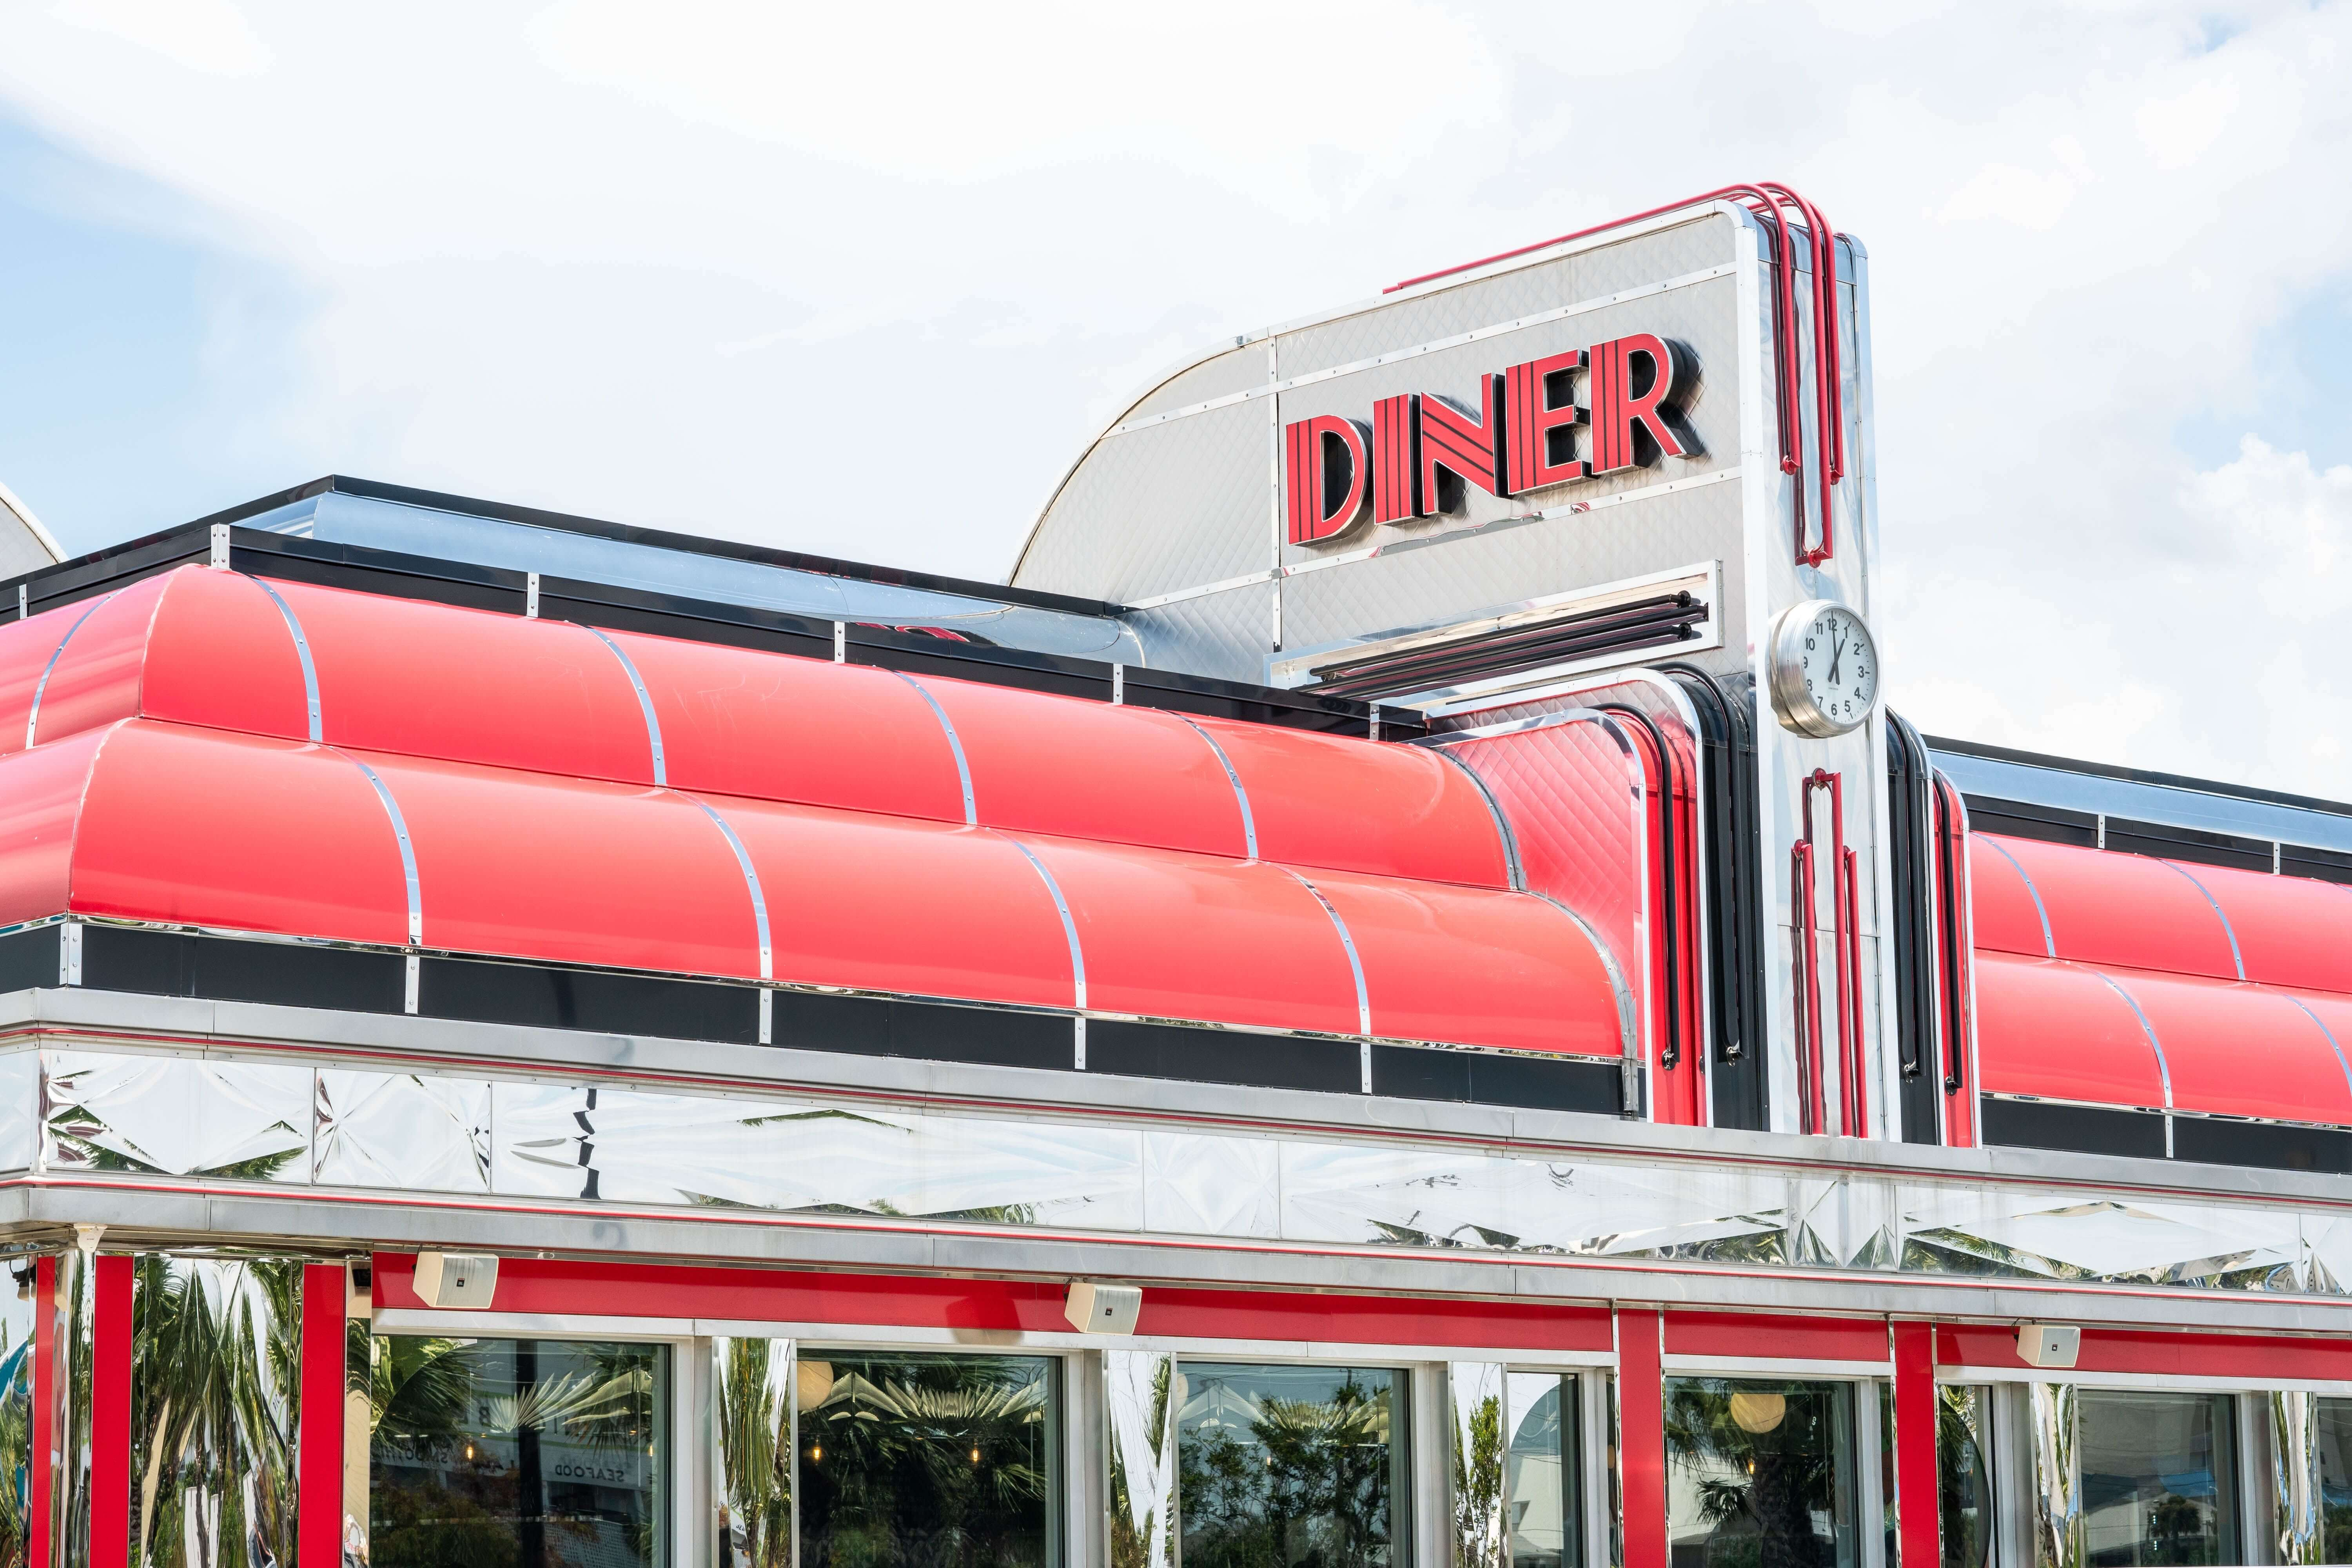 The 50 S Are Back Sunliner Diner Is Driving Into Pigeon Forge Otherthe Official Pigeon Forge Chamber Of Commerce